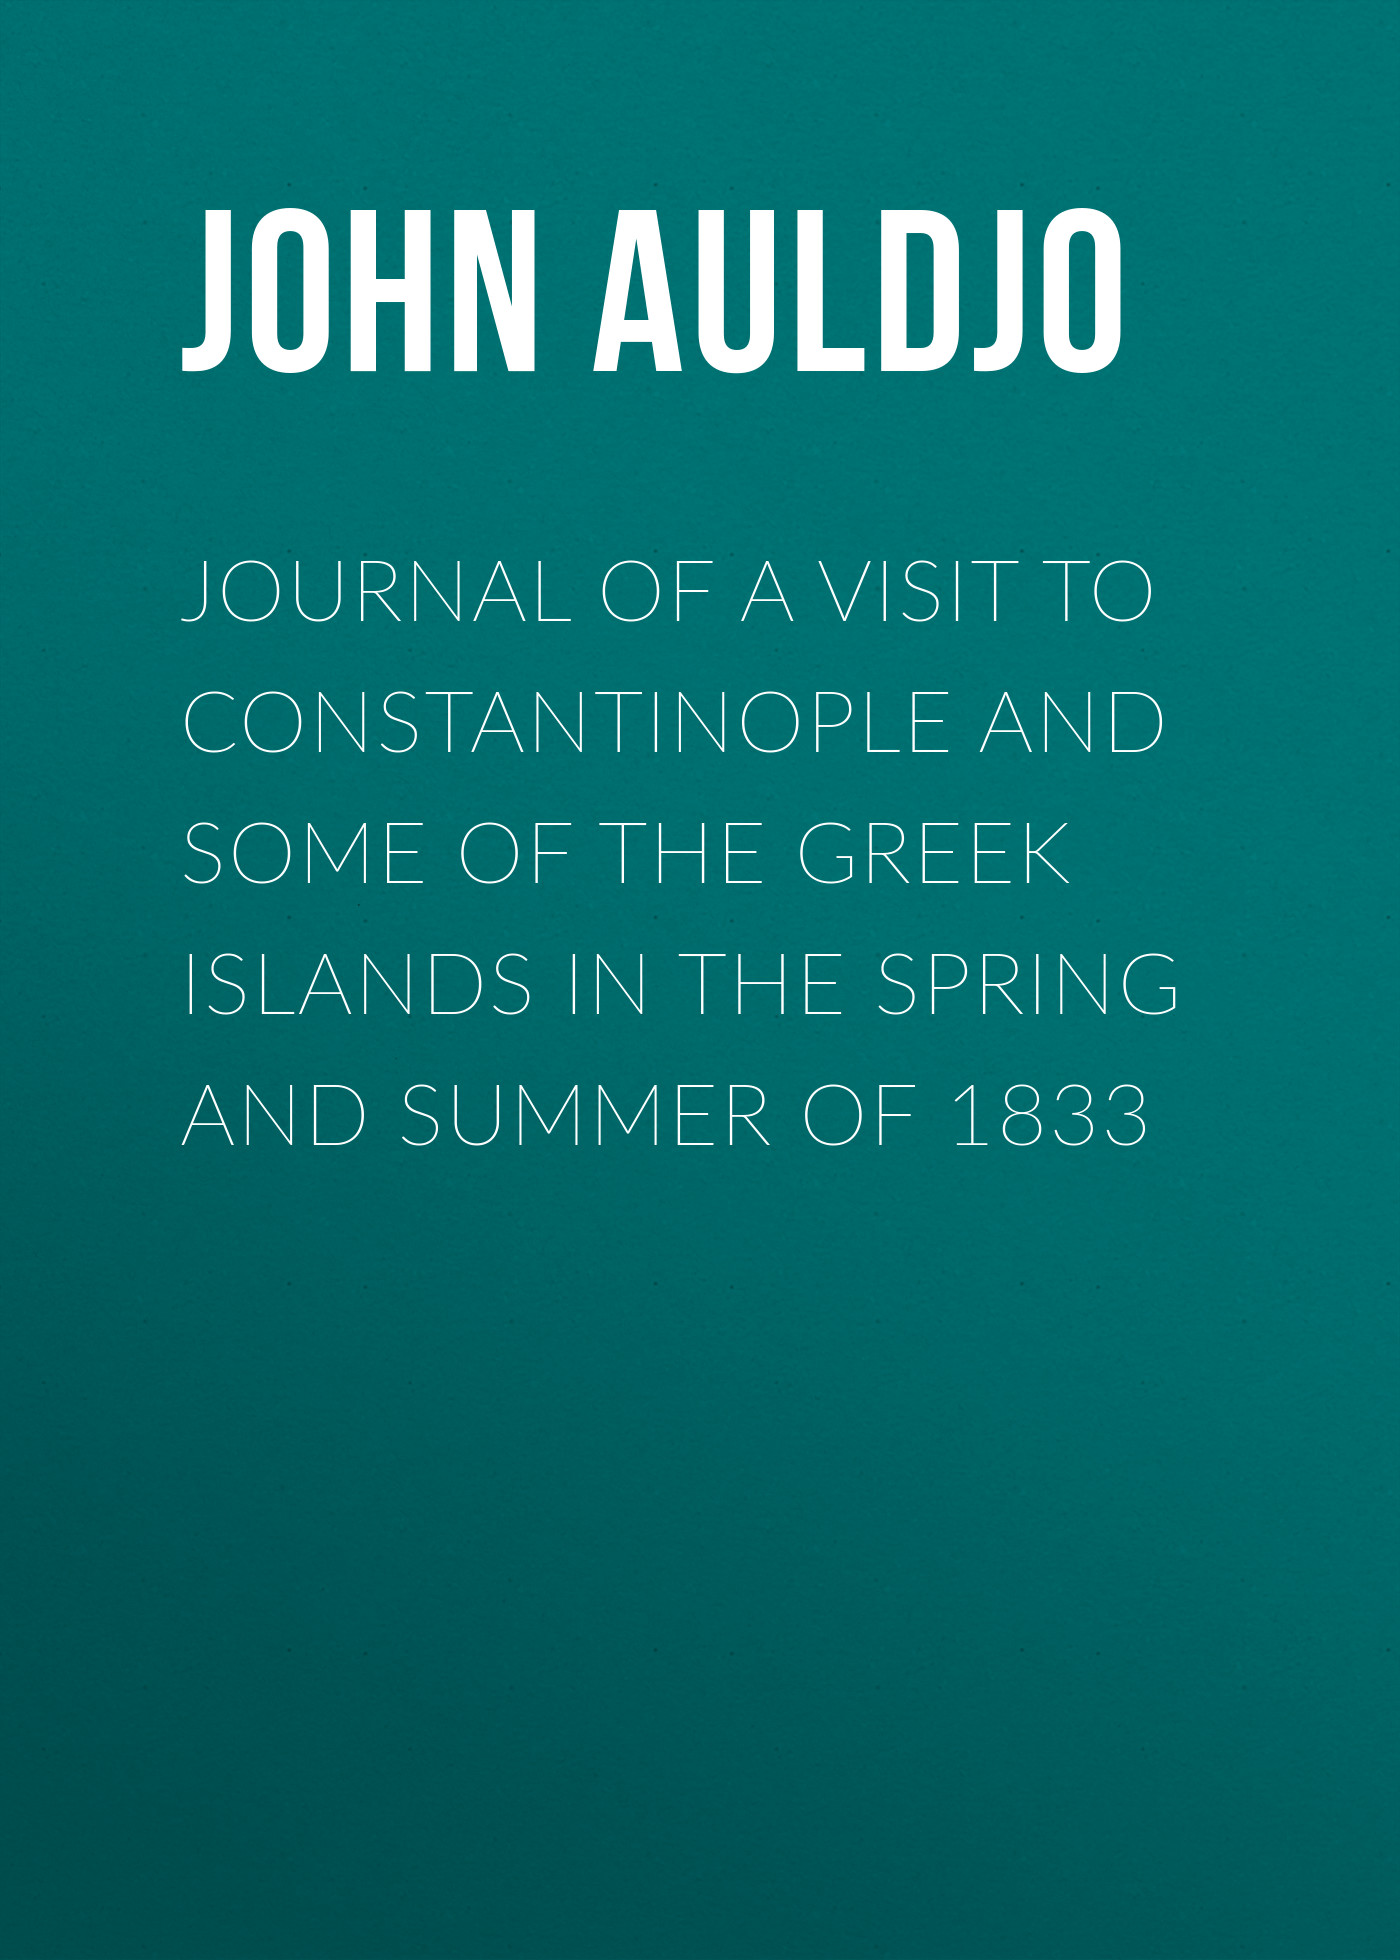 Фото - Auldjo John Journal of a Visit to Constantinople and Some of the Greek Islands in the Spring and Summer of 1833 spring and summer bag for women new creative hanging chain beads genuine cowskin shoulder leather handbag messenger 7p1123